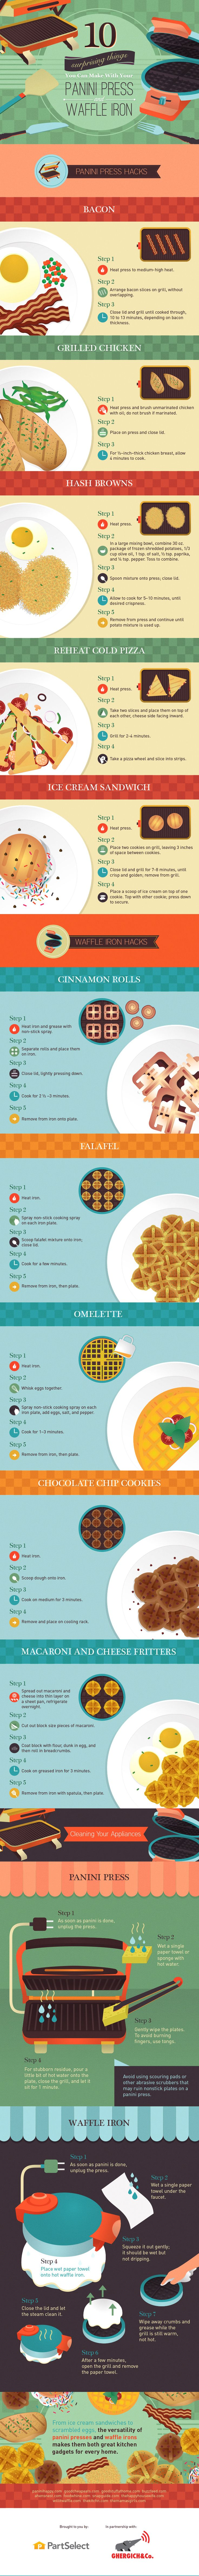 10 Surprising Things You Can Make With Your Panini Press & Waffle Iron - The Road to Domestication